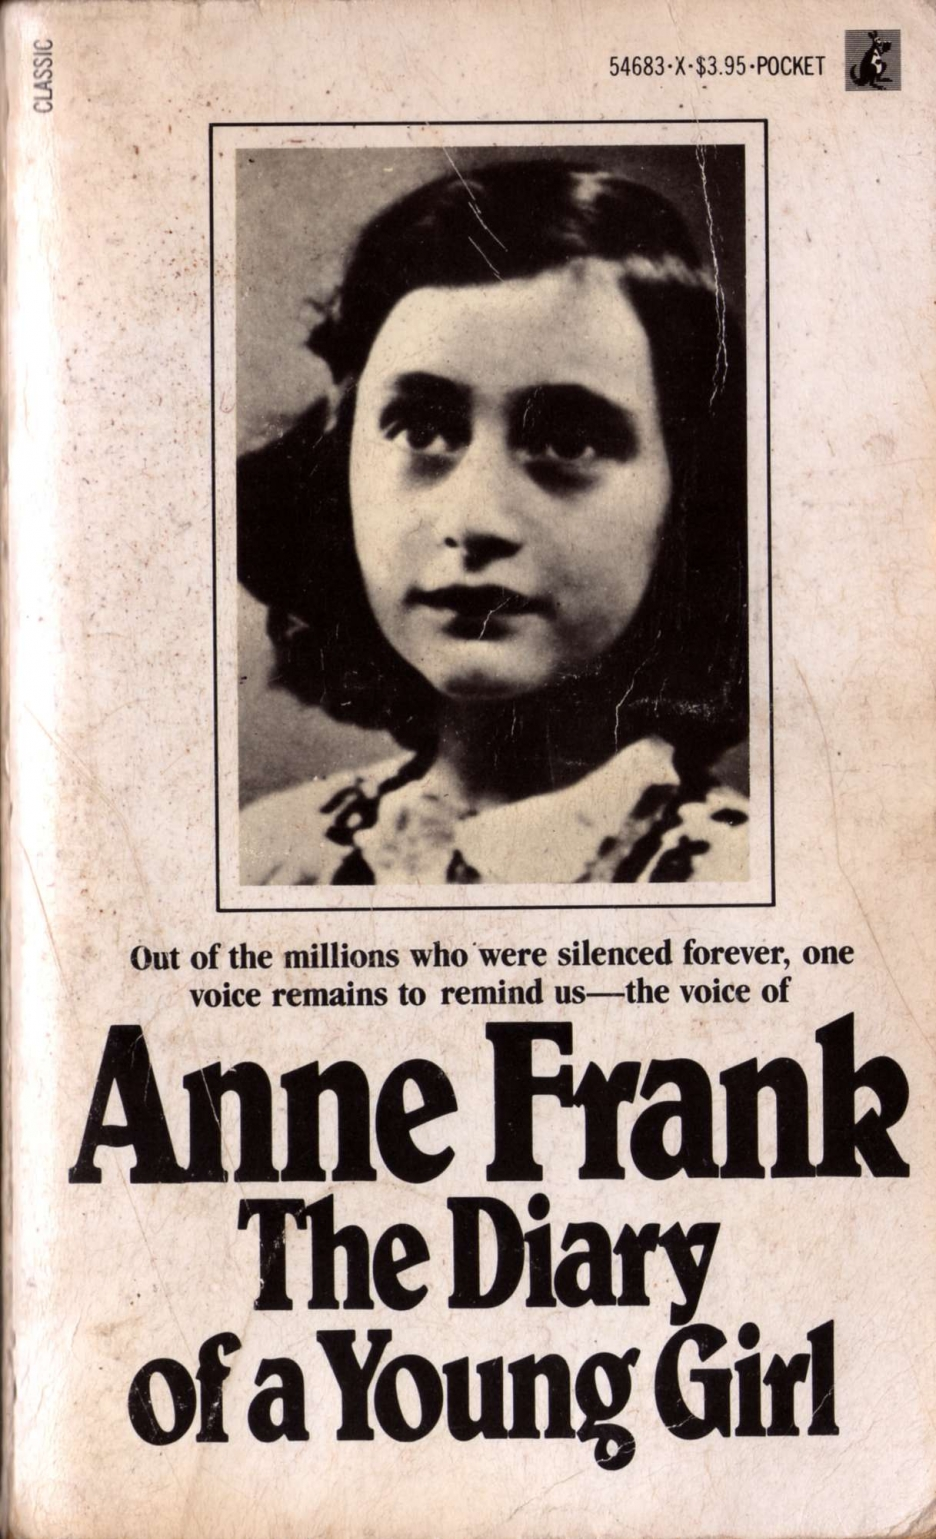 the life of otto frank and a review of his diary entries from 1942 The hidden life of otto frank by carol ann lee morrow lee previously had written roses from the earth, a biography of anne frank any careful reader of anne's diary realizes that her relationship with her father was critical ahlers saved frank's life.